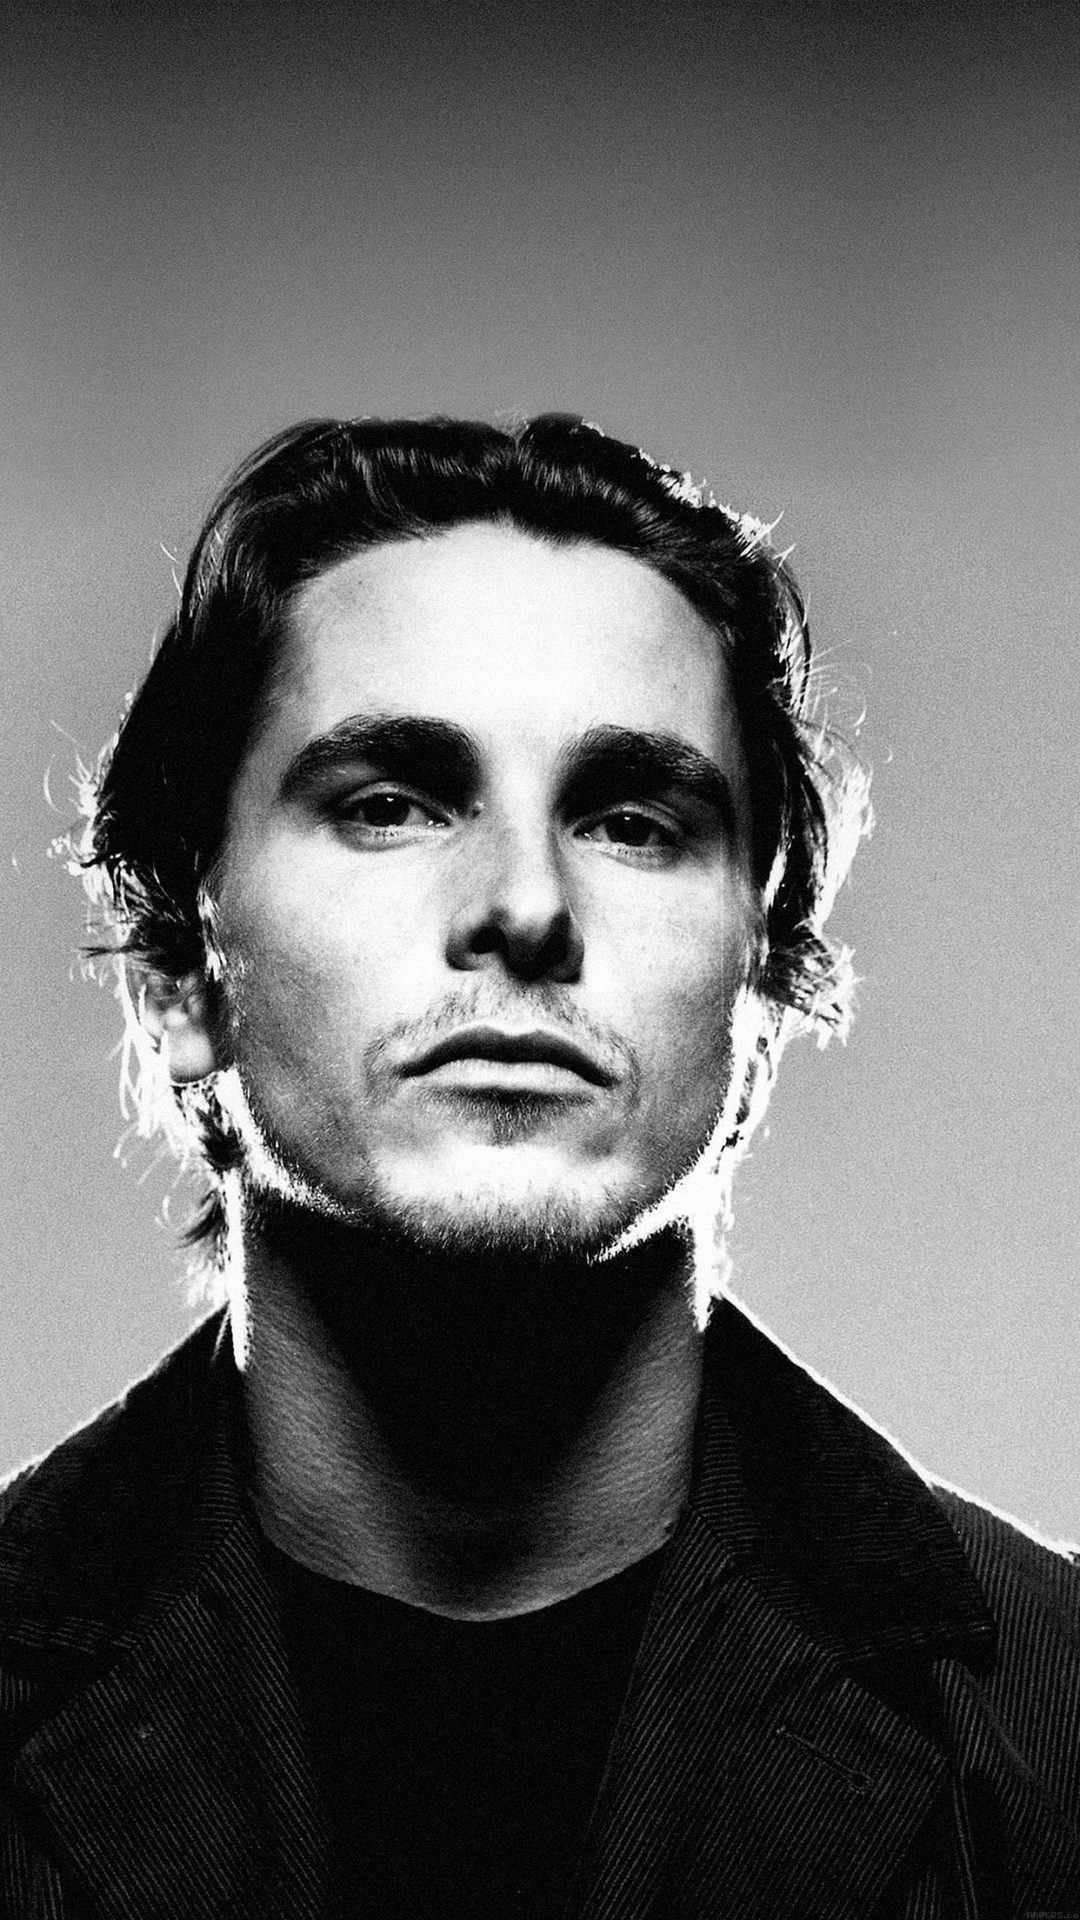 Wallpaper Christian Bale Film Face